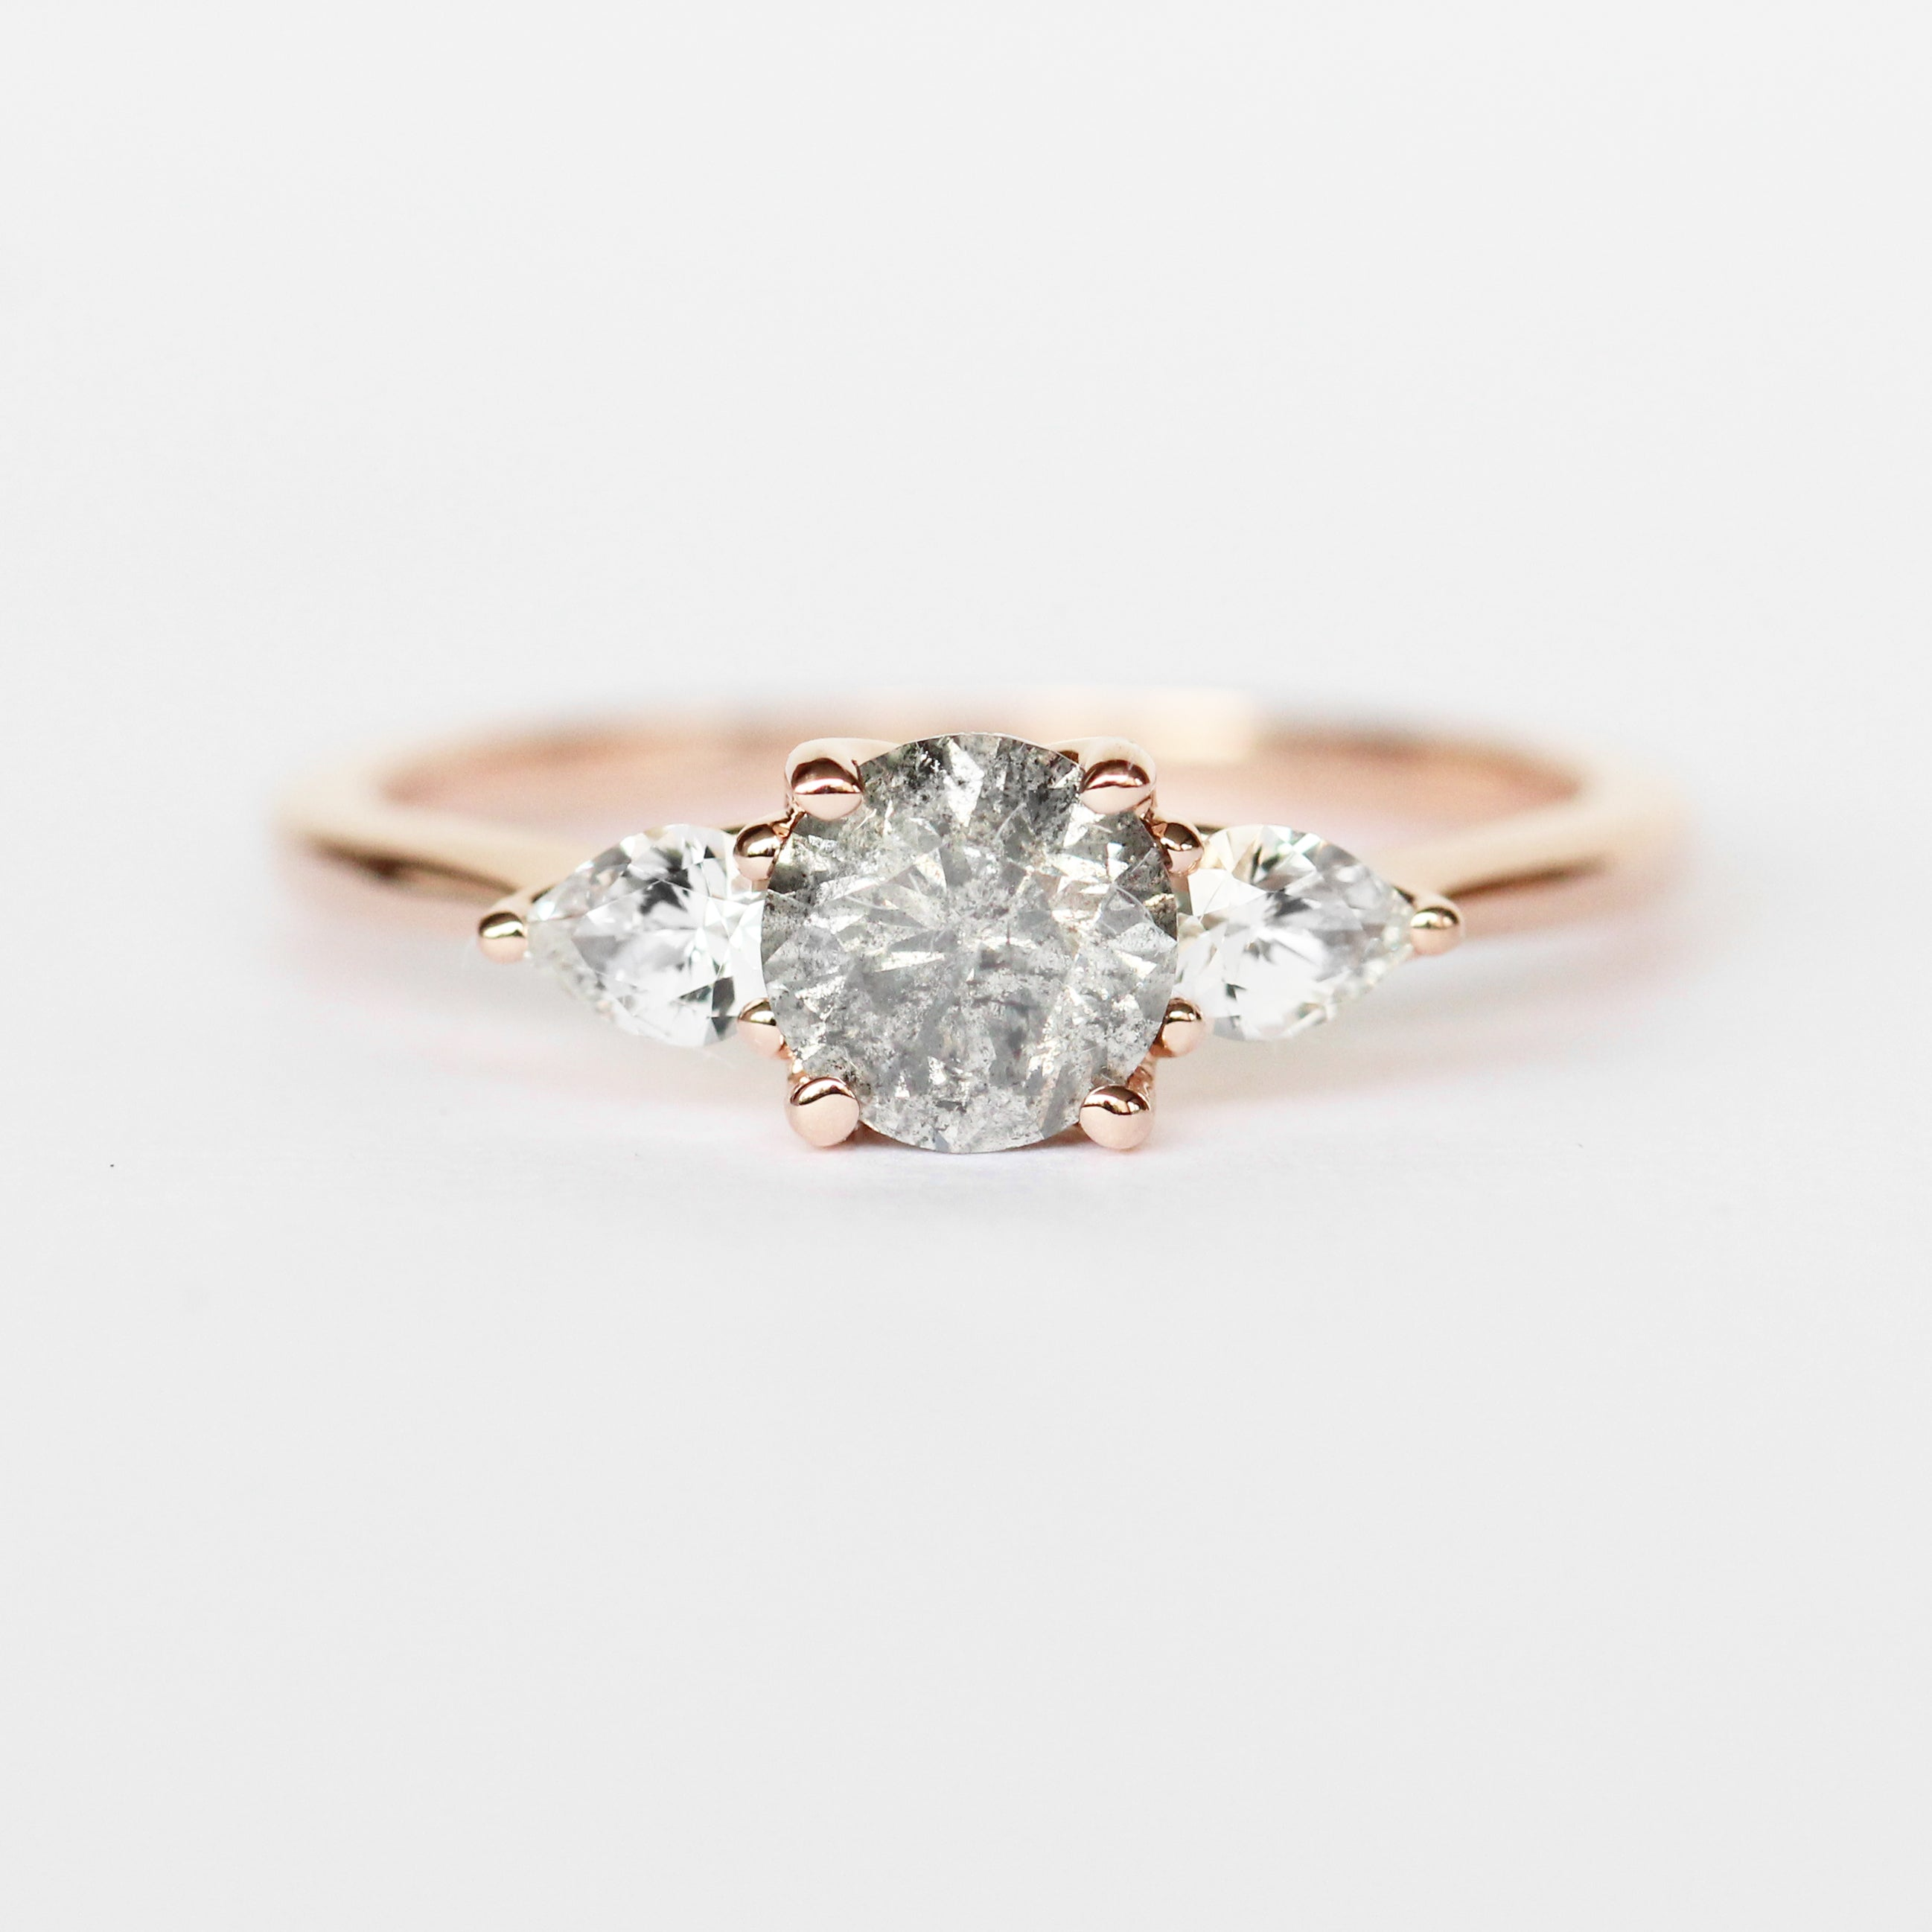 Oleander Ring with a .77 ct Round Celestial Diamond and White Sapphires in 14k Rose Gold - Ready to Size and Ship - Celestial Diamonds ® by Midwinter Co.